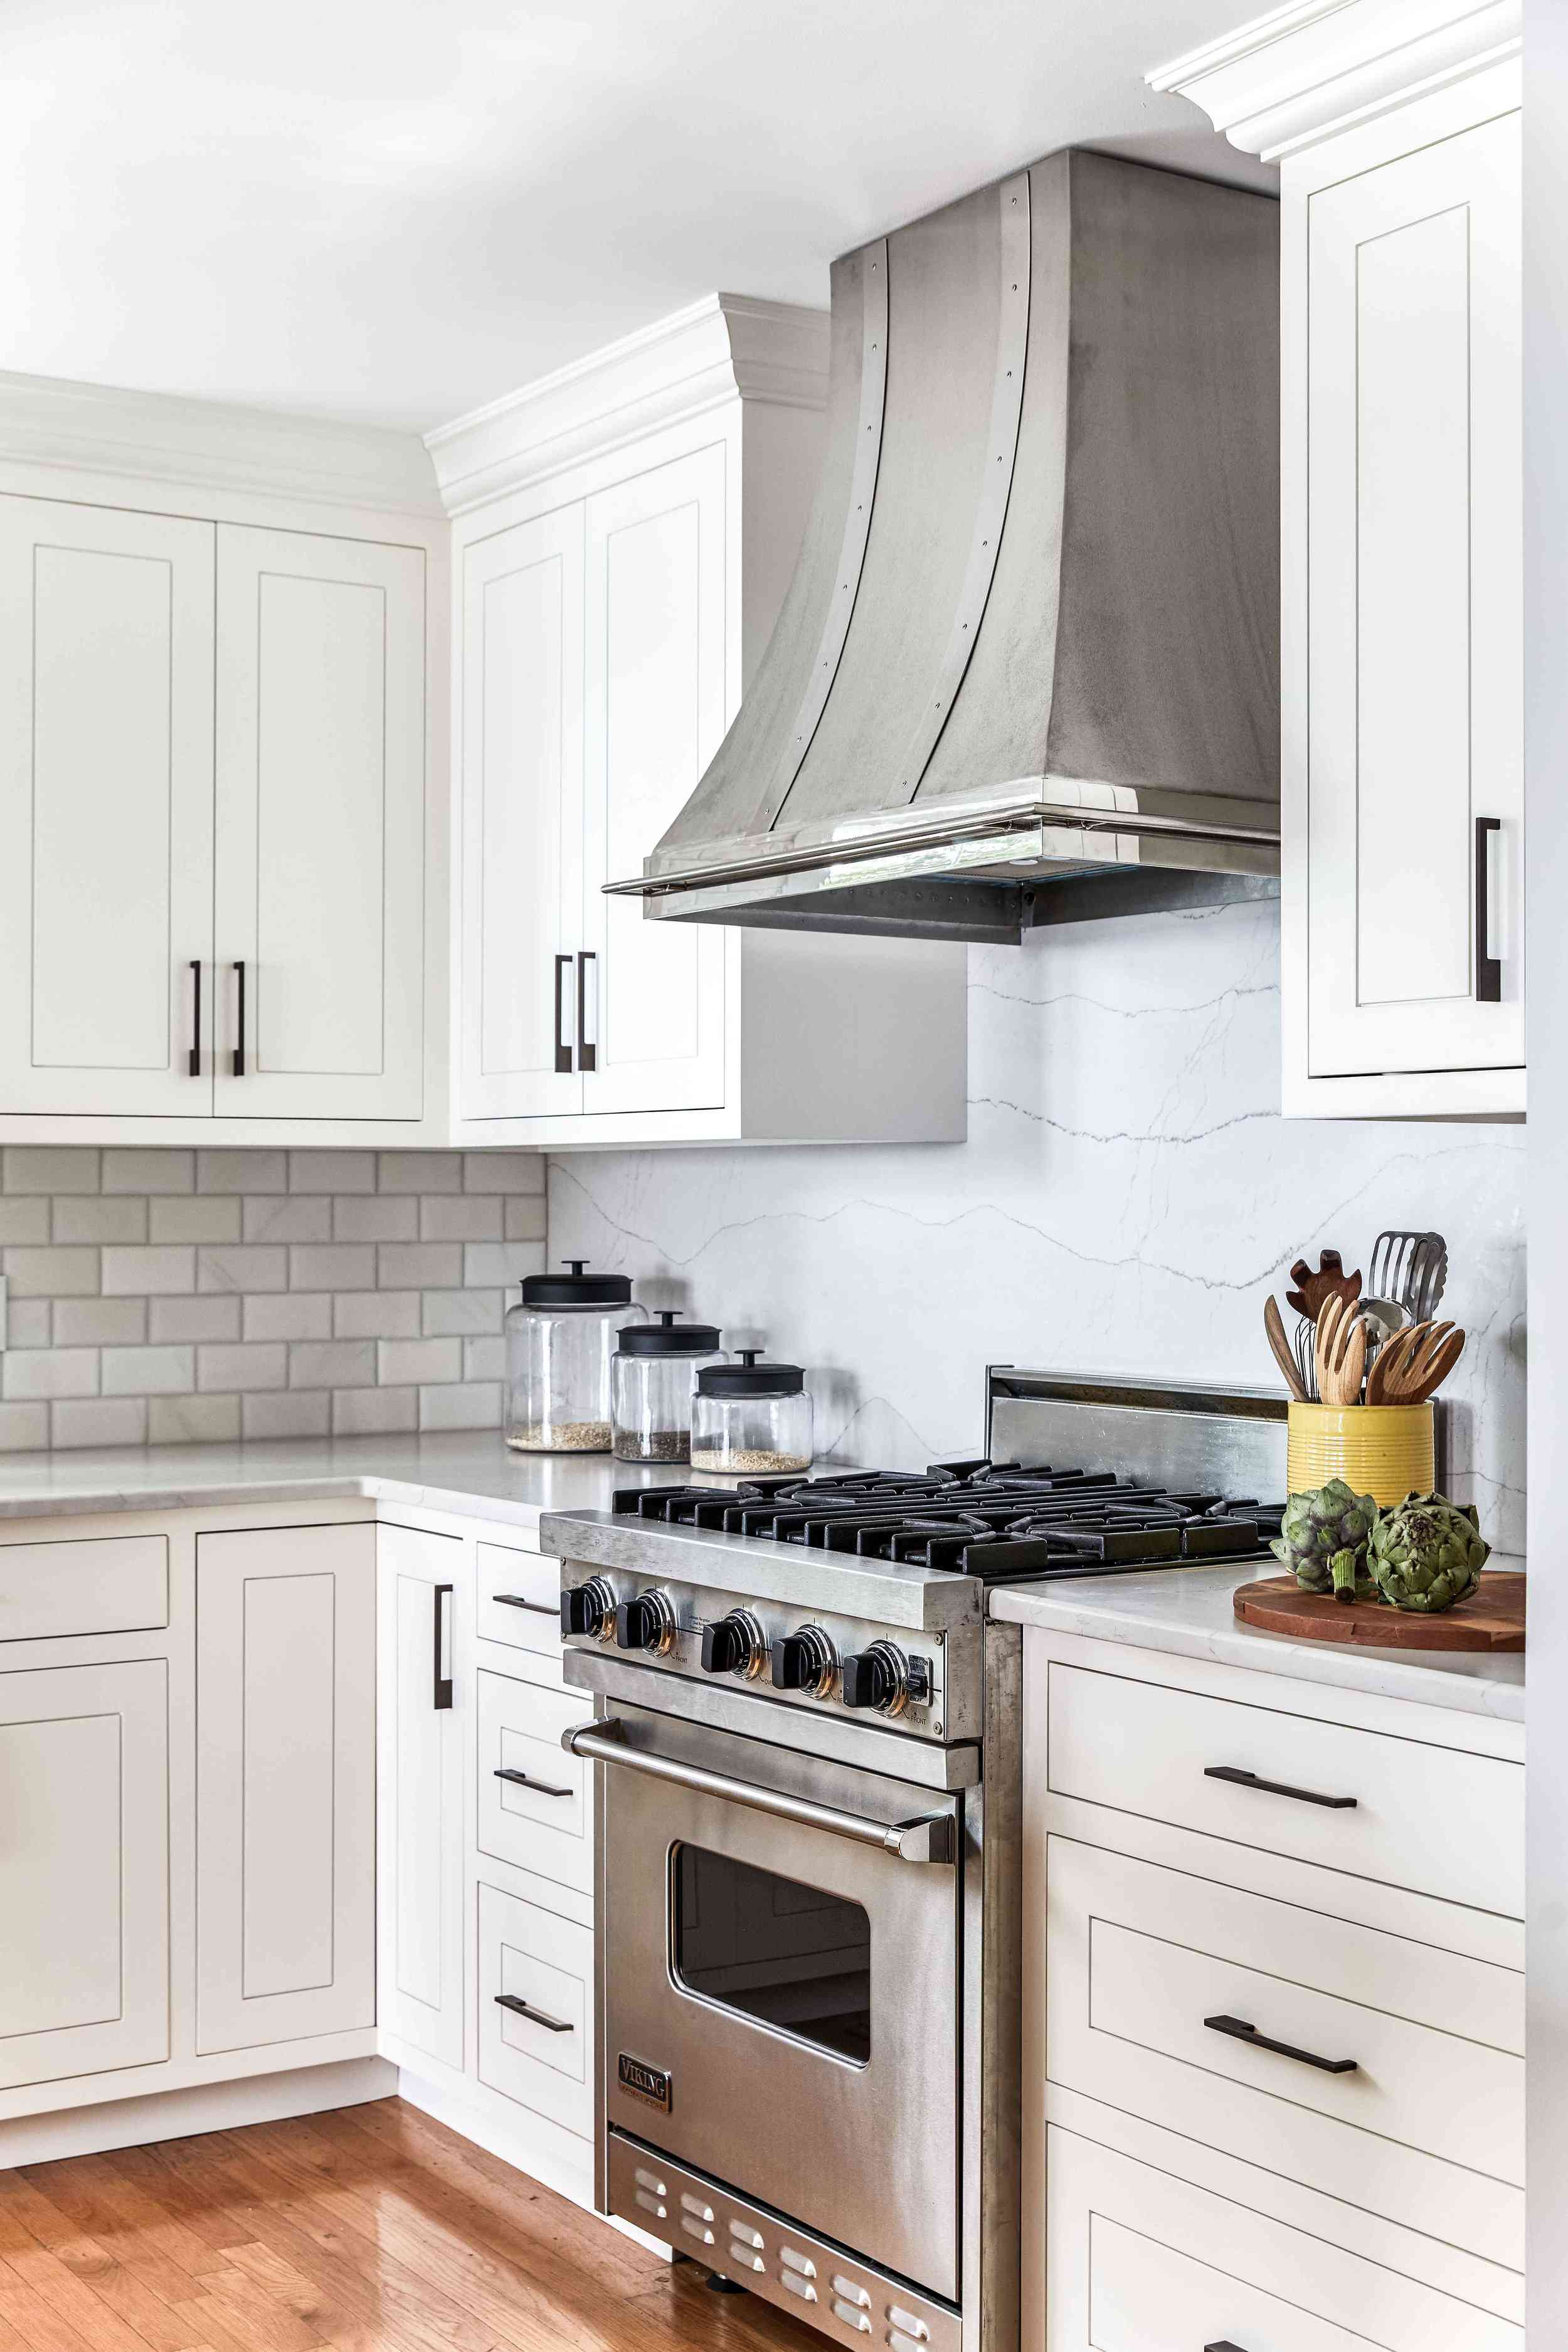 A kitchen with two white backsplashes: one crafted from tiles, and one crafted from marble